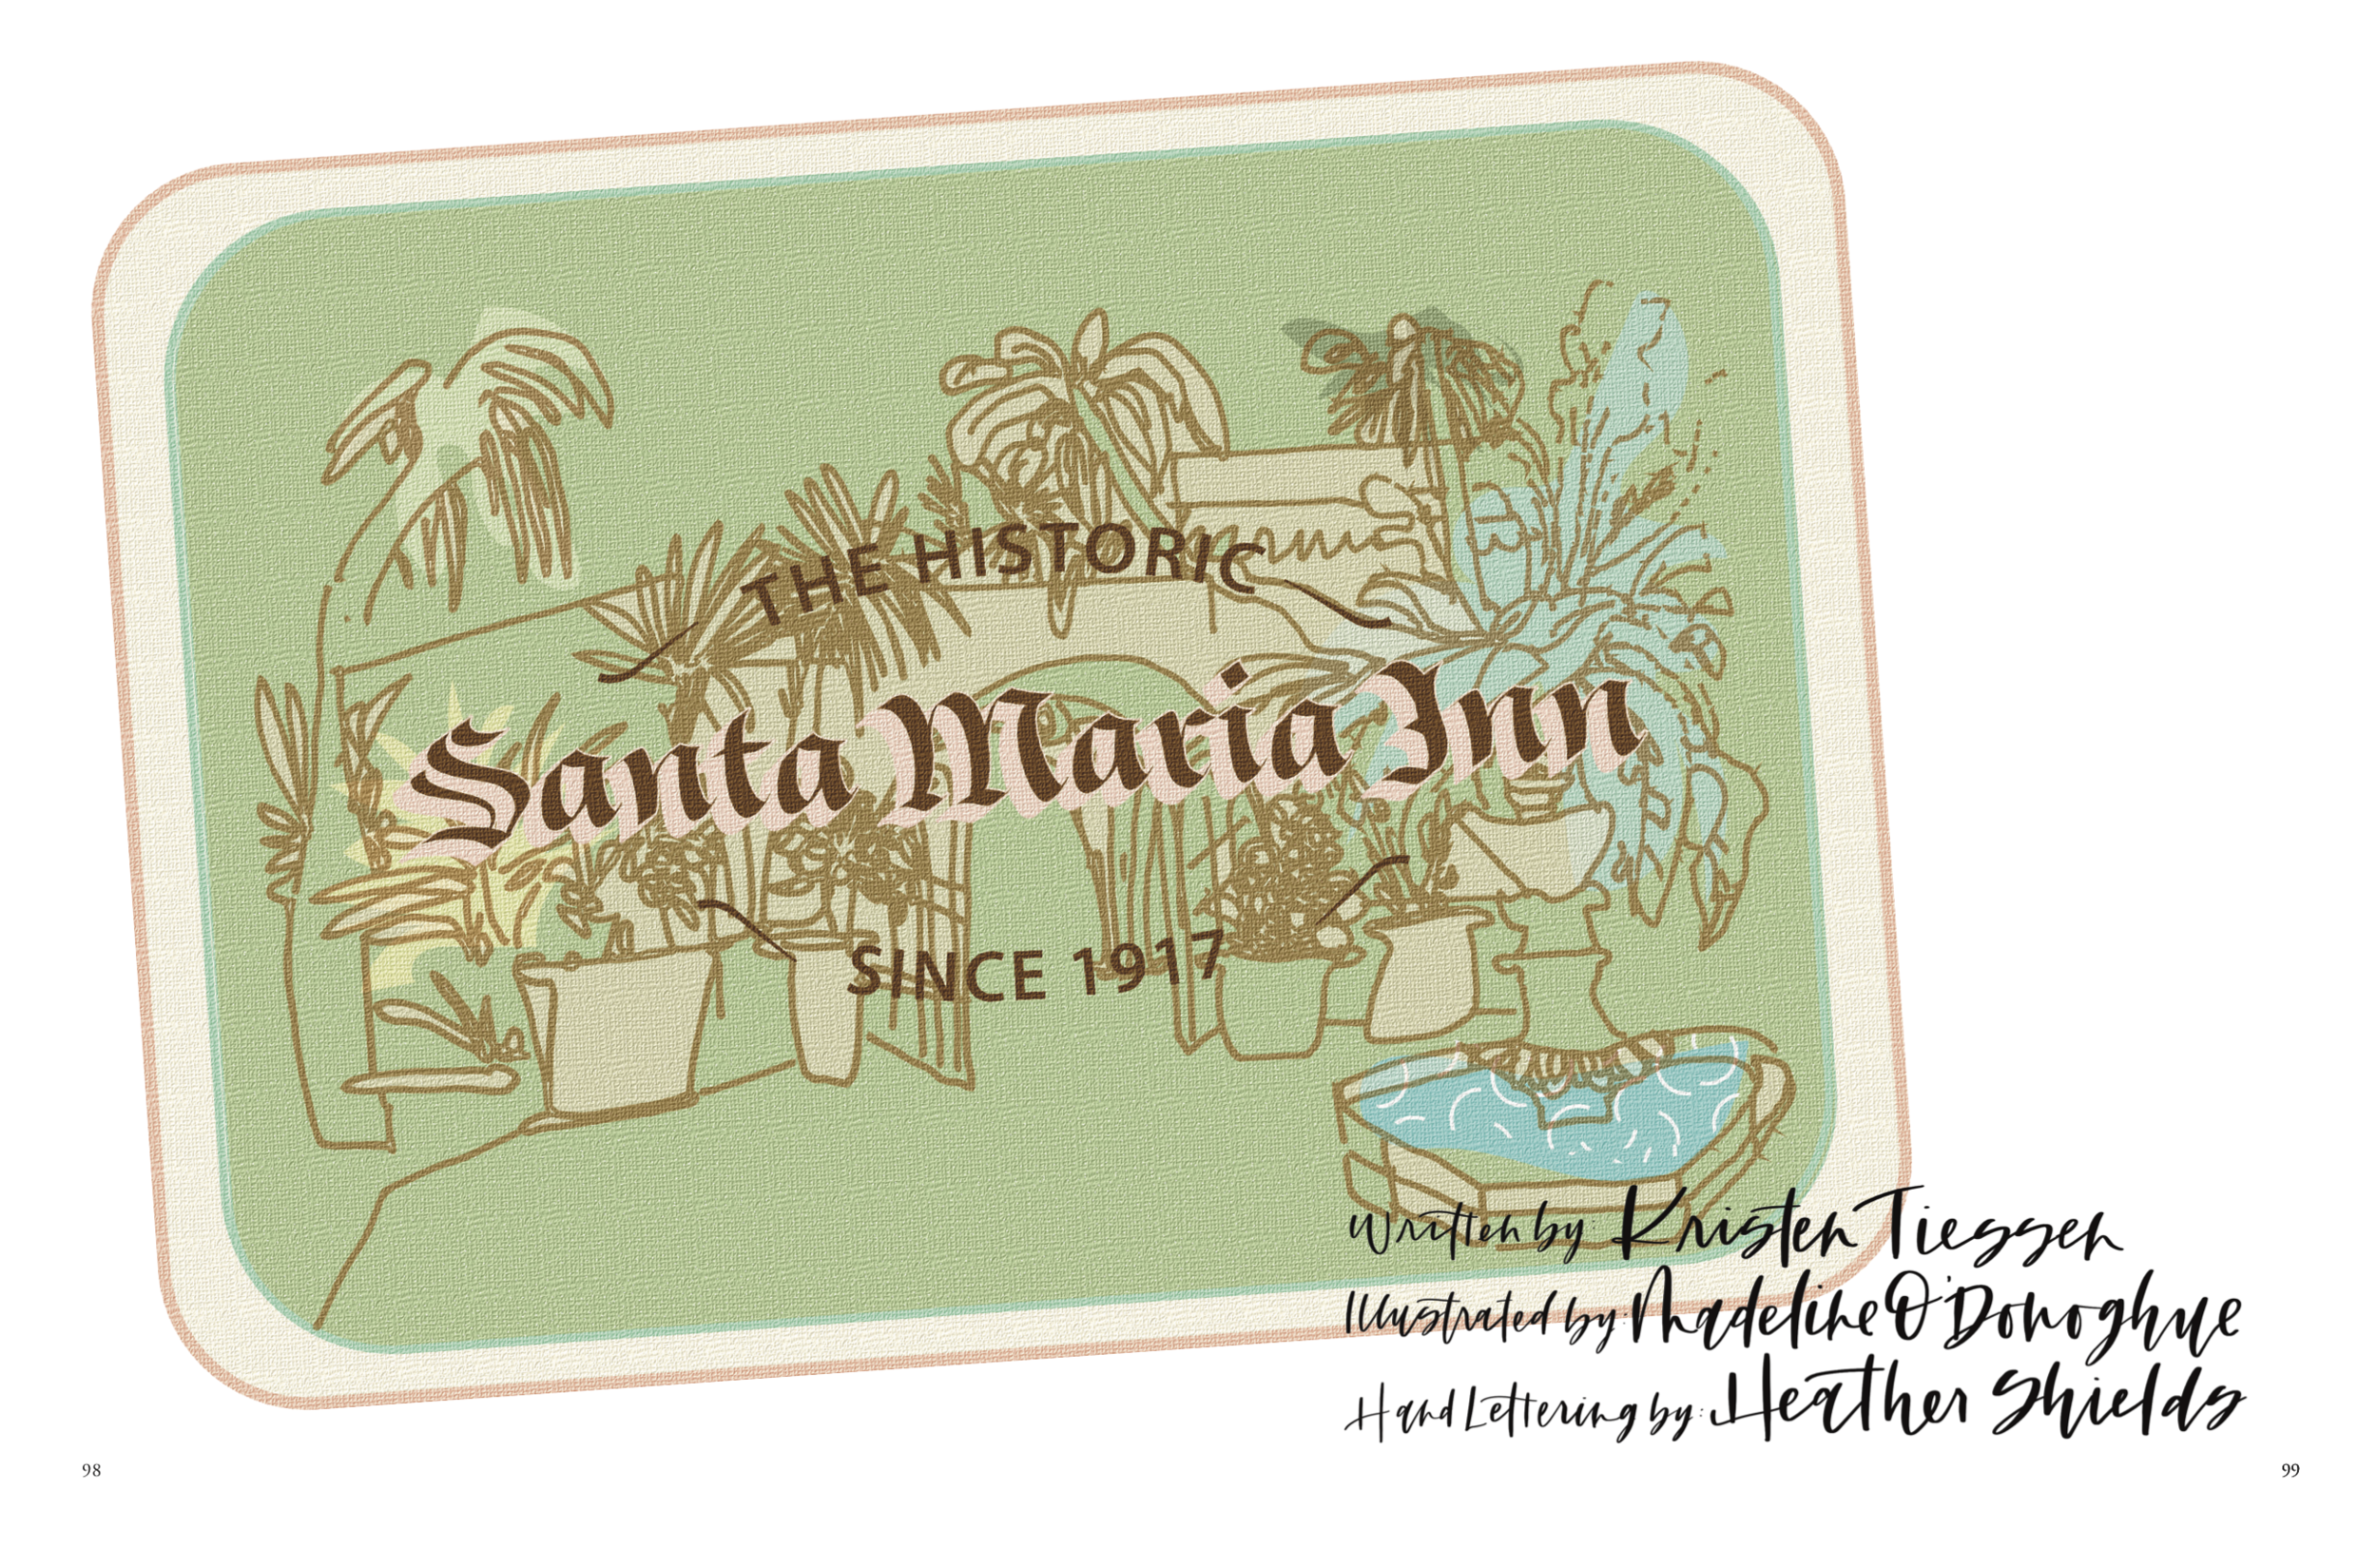 """""""The Historic Santa Maria Inn"""" - The landmark Santa Maria Inn stretches and entire city block in all its architectural splendor. Constructed in 1916 and owned by retired Union Sugar feeding and house manager Frank McCoy, this historic hotel has become an attraction for everyone from average Joes to worldwide celebrities."""